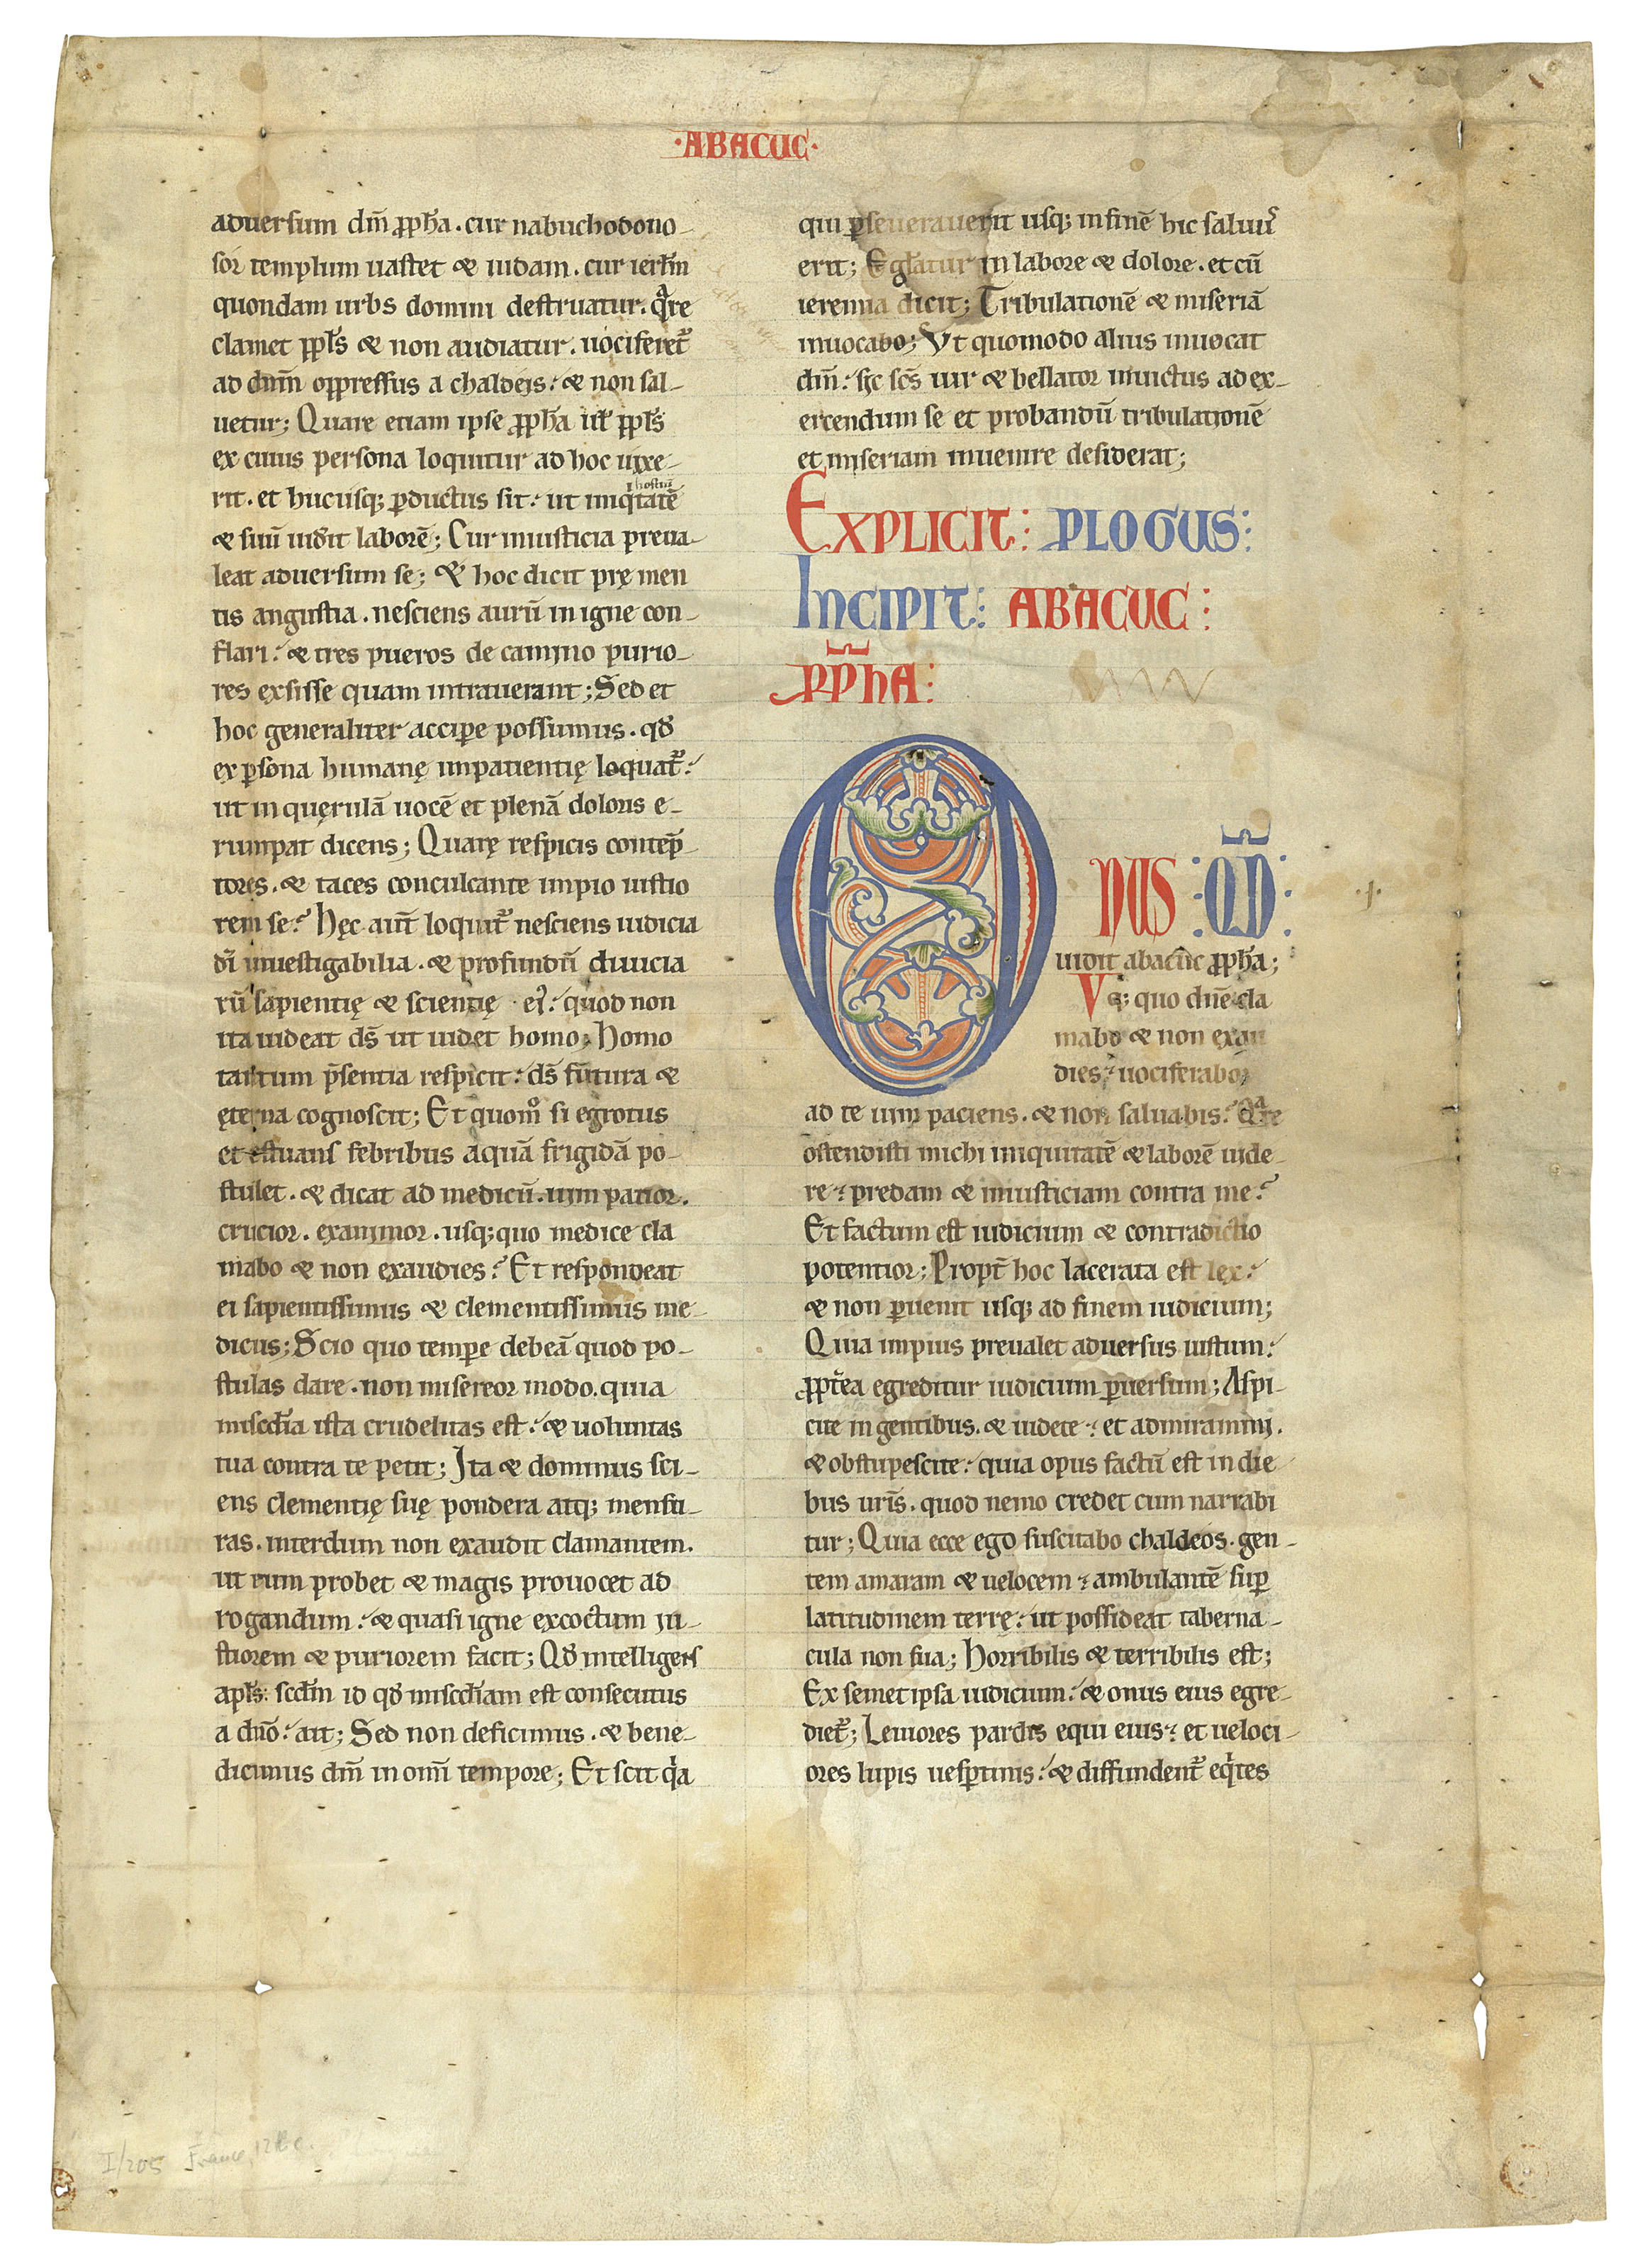 BIBLE, a leaf from a Giant Romanesque Bible, in Latin, decorated